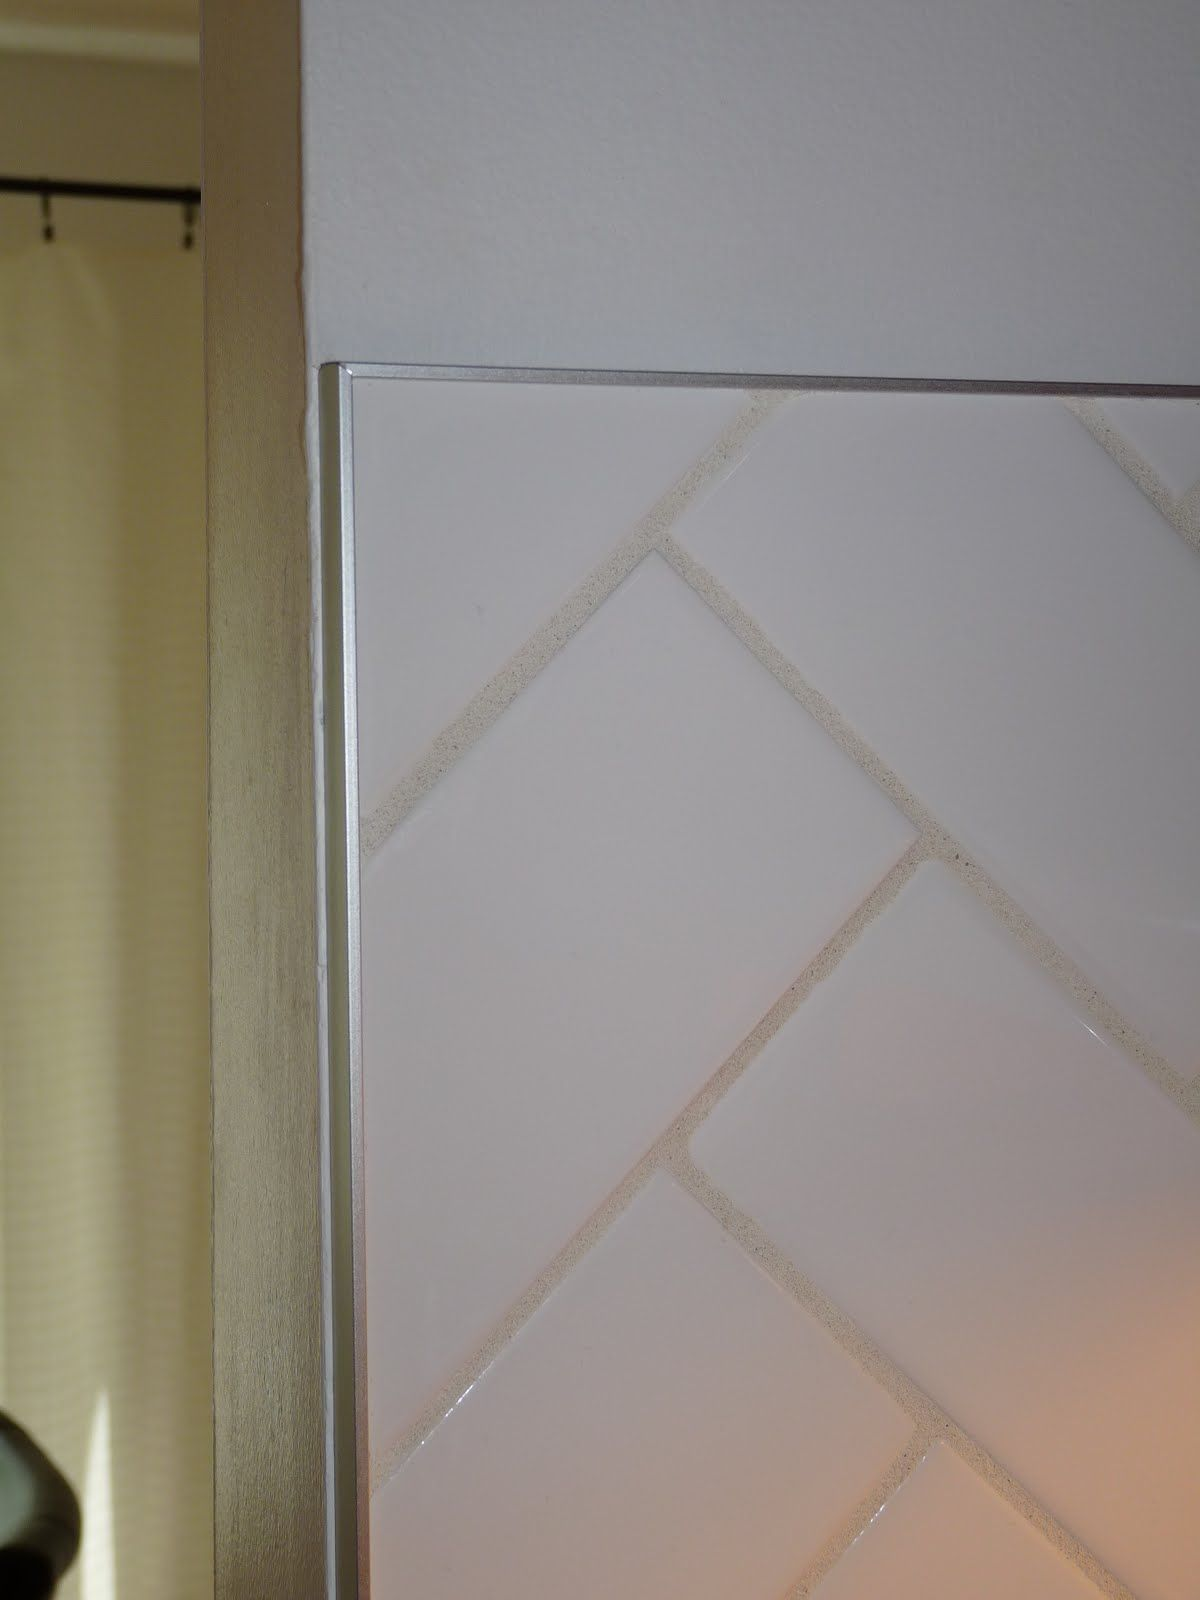 How To Finish Tile With Metal Edging Dans Le Lakehouse Metal Edging Tile Edge Tile Trim